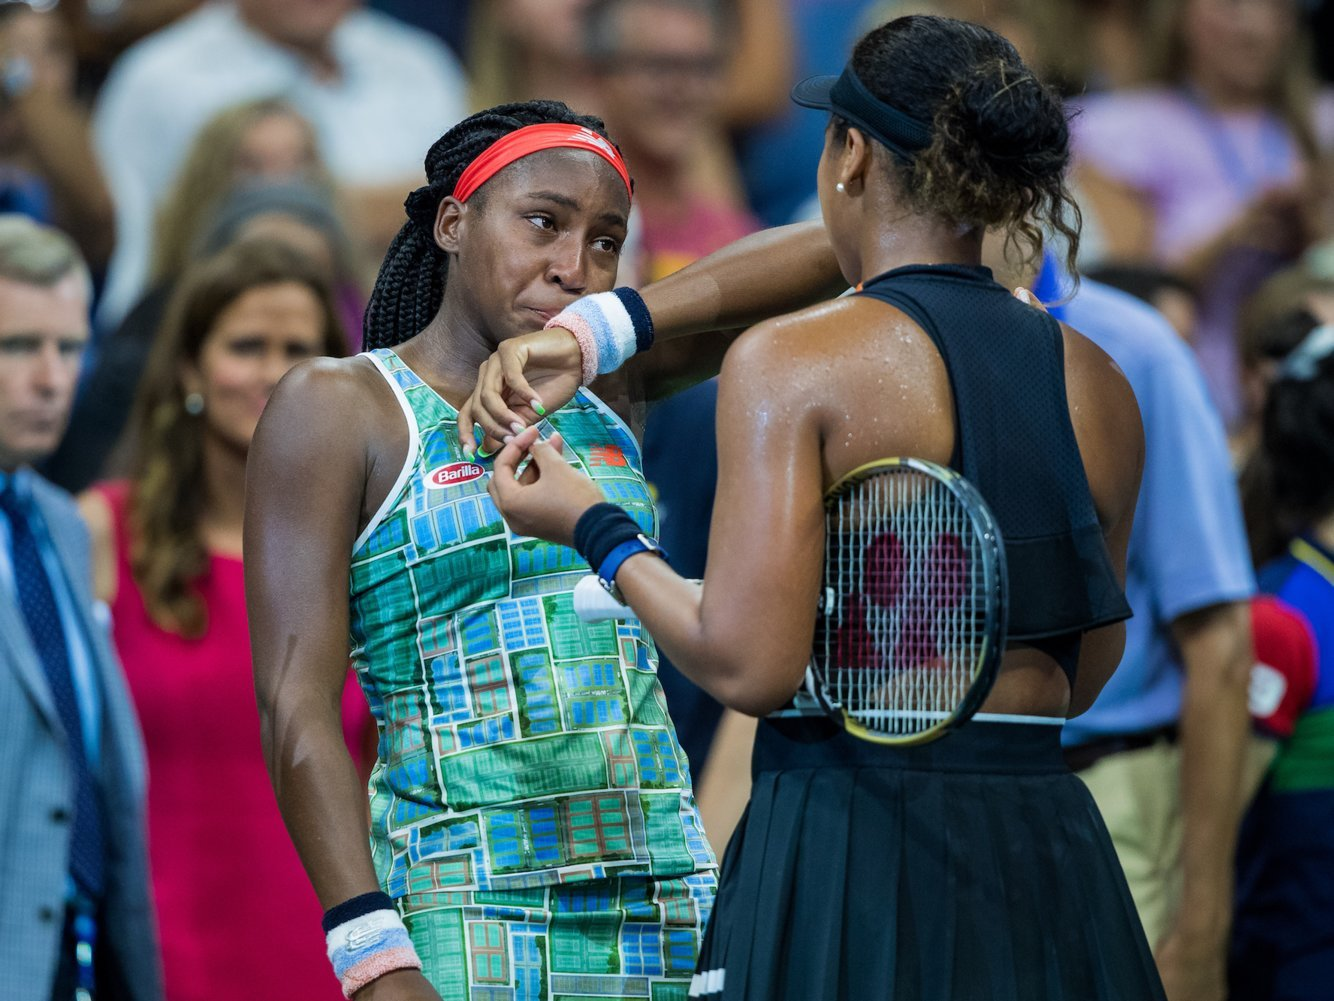 Naomi Osaka consoled a teary-eyed Coco Gauff after beating her in style at the US Open